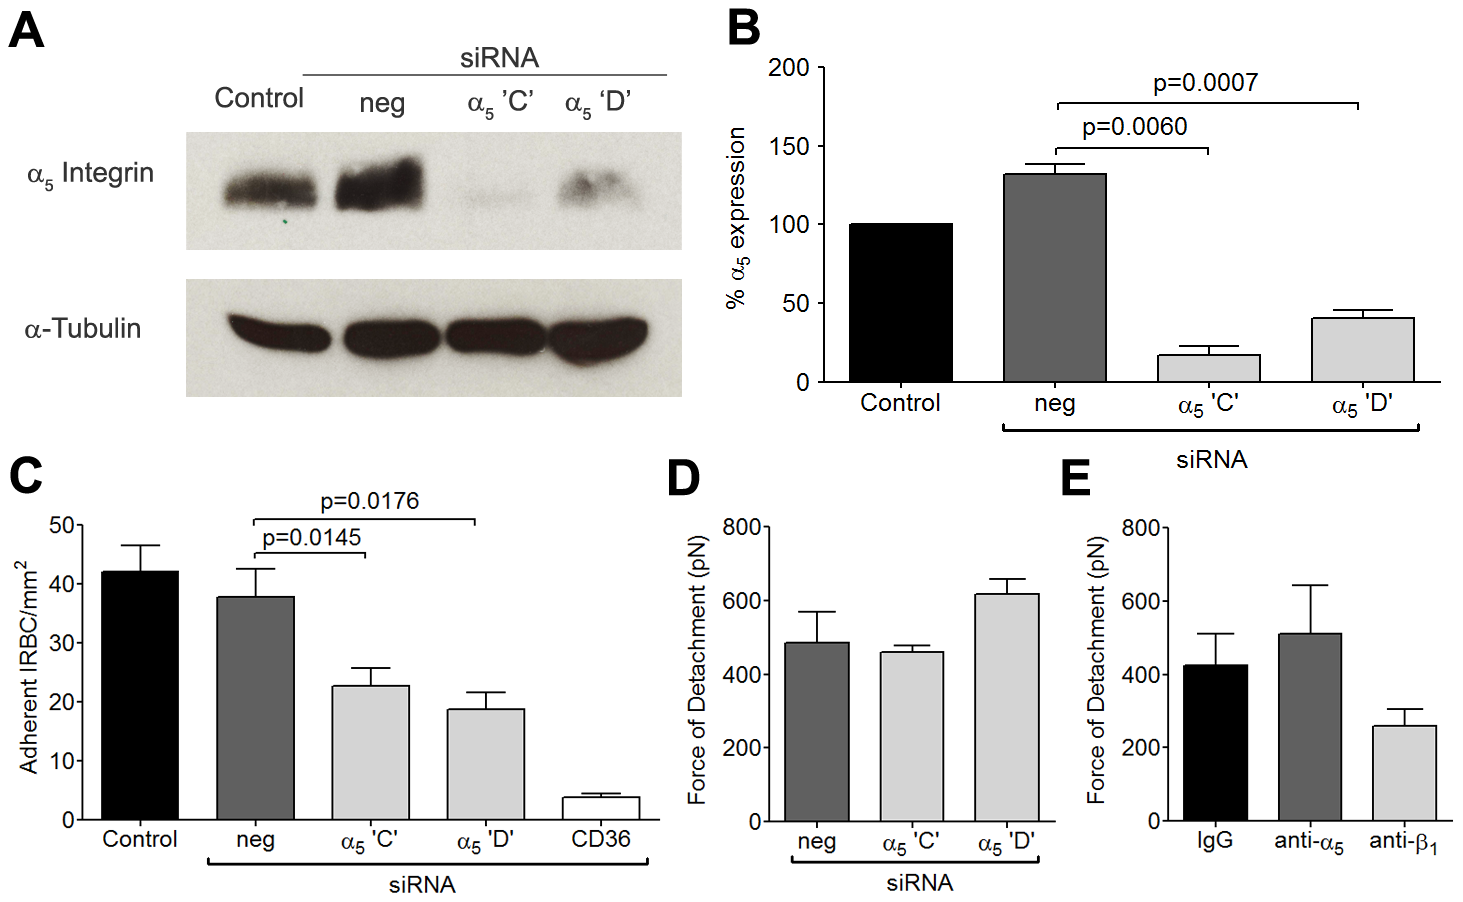 Inhibition of cytoadherence but not adhesive strength on HDMEC transfected with small interference RNA of α<sub>5</sub> integrin.